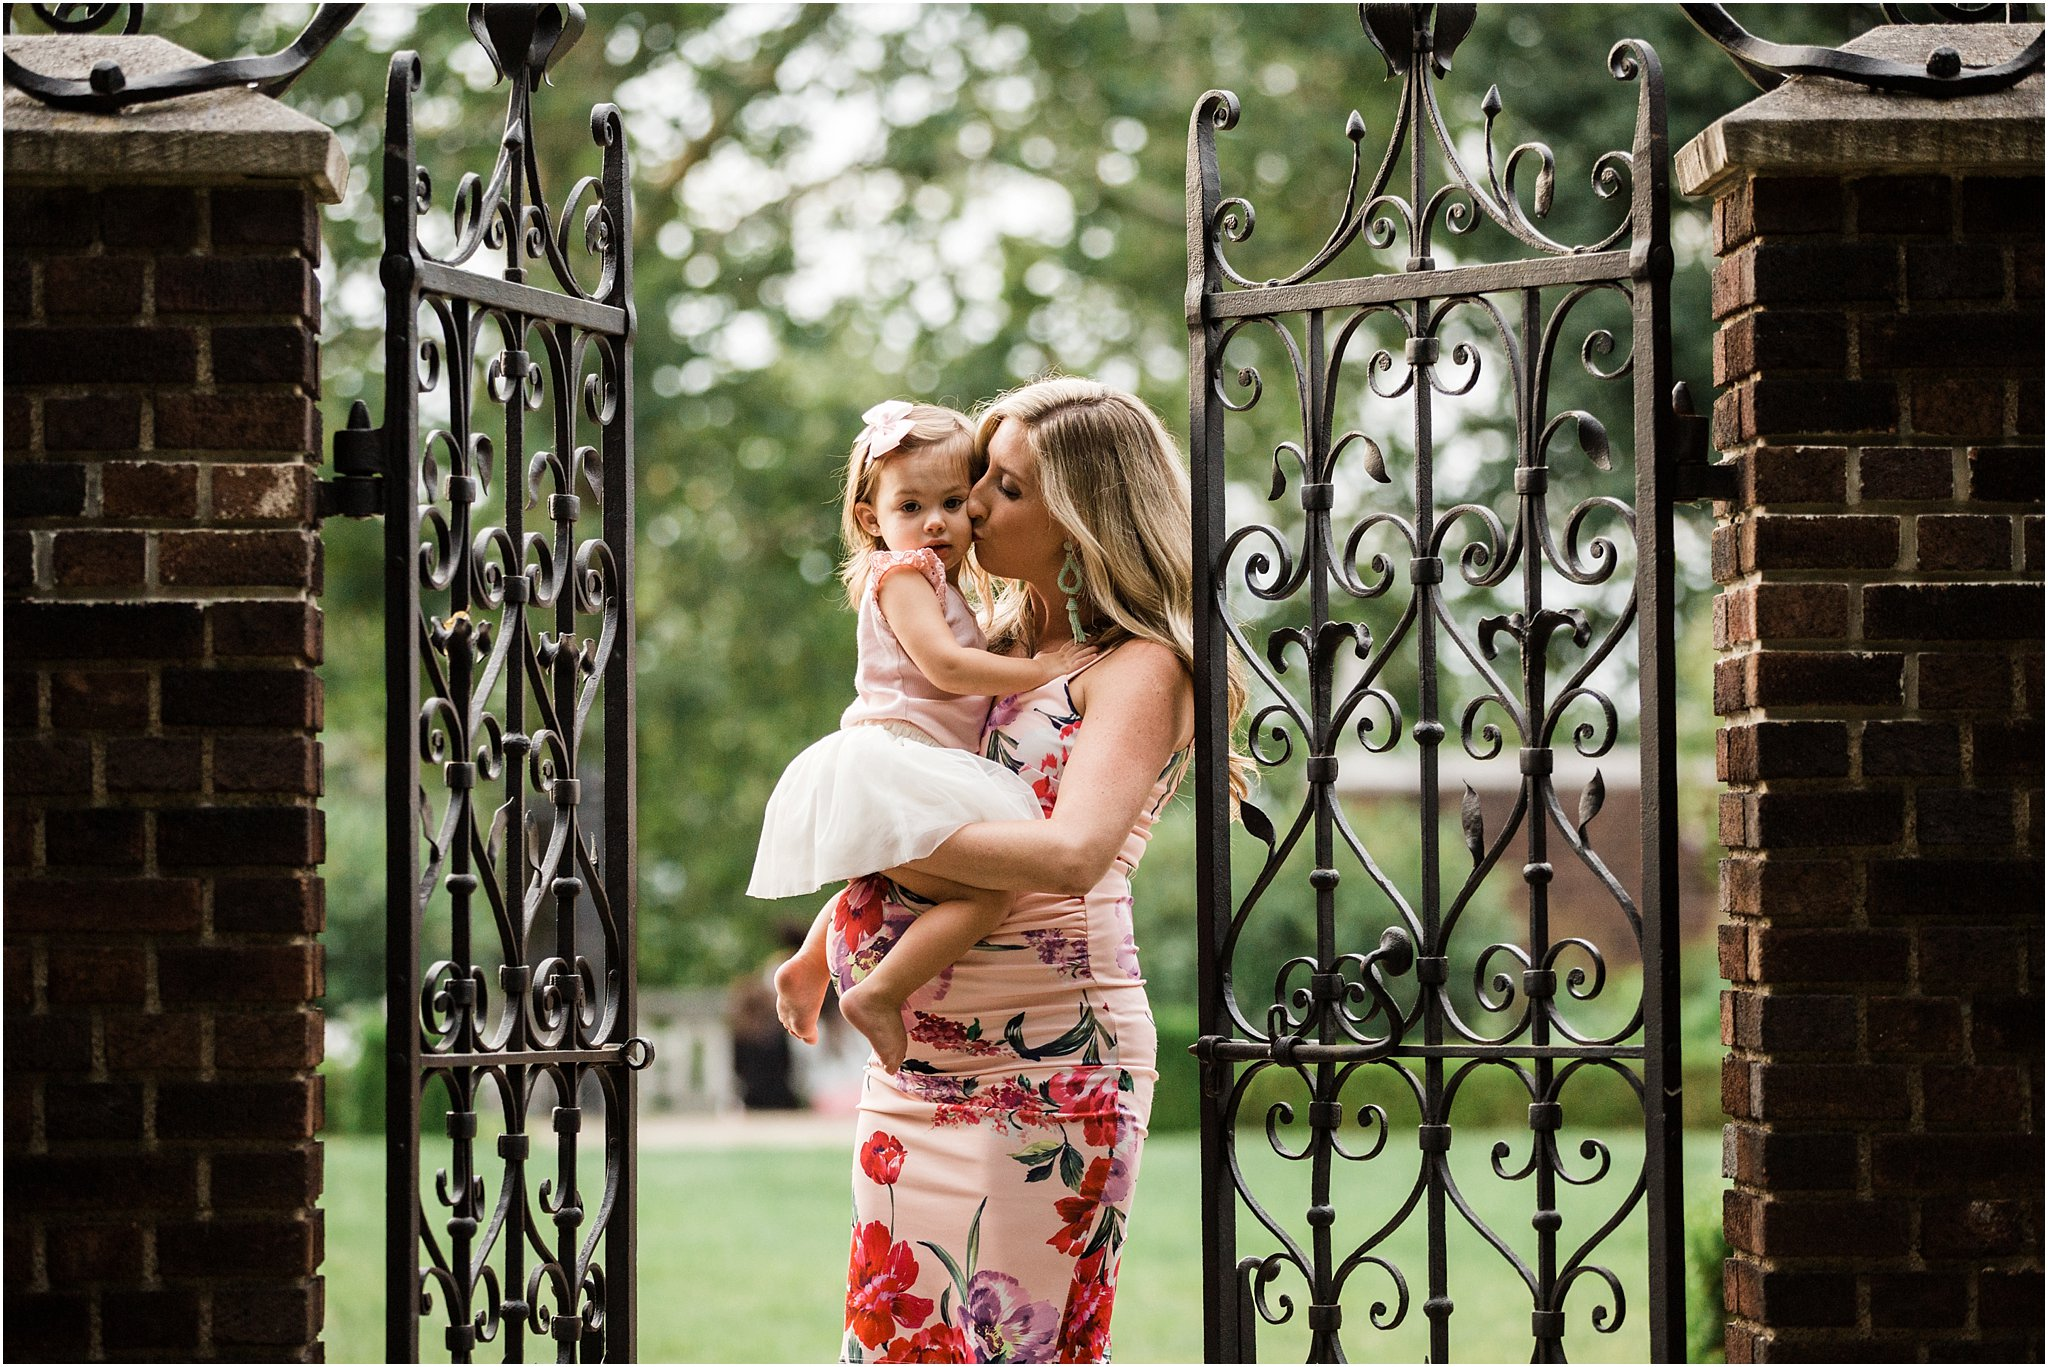 expecting mother holding daughter in iron gate opening